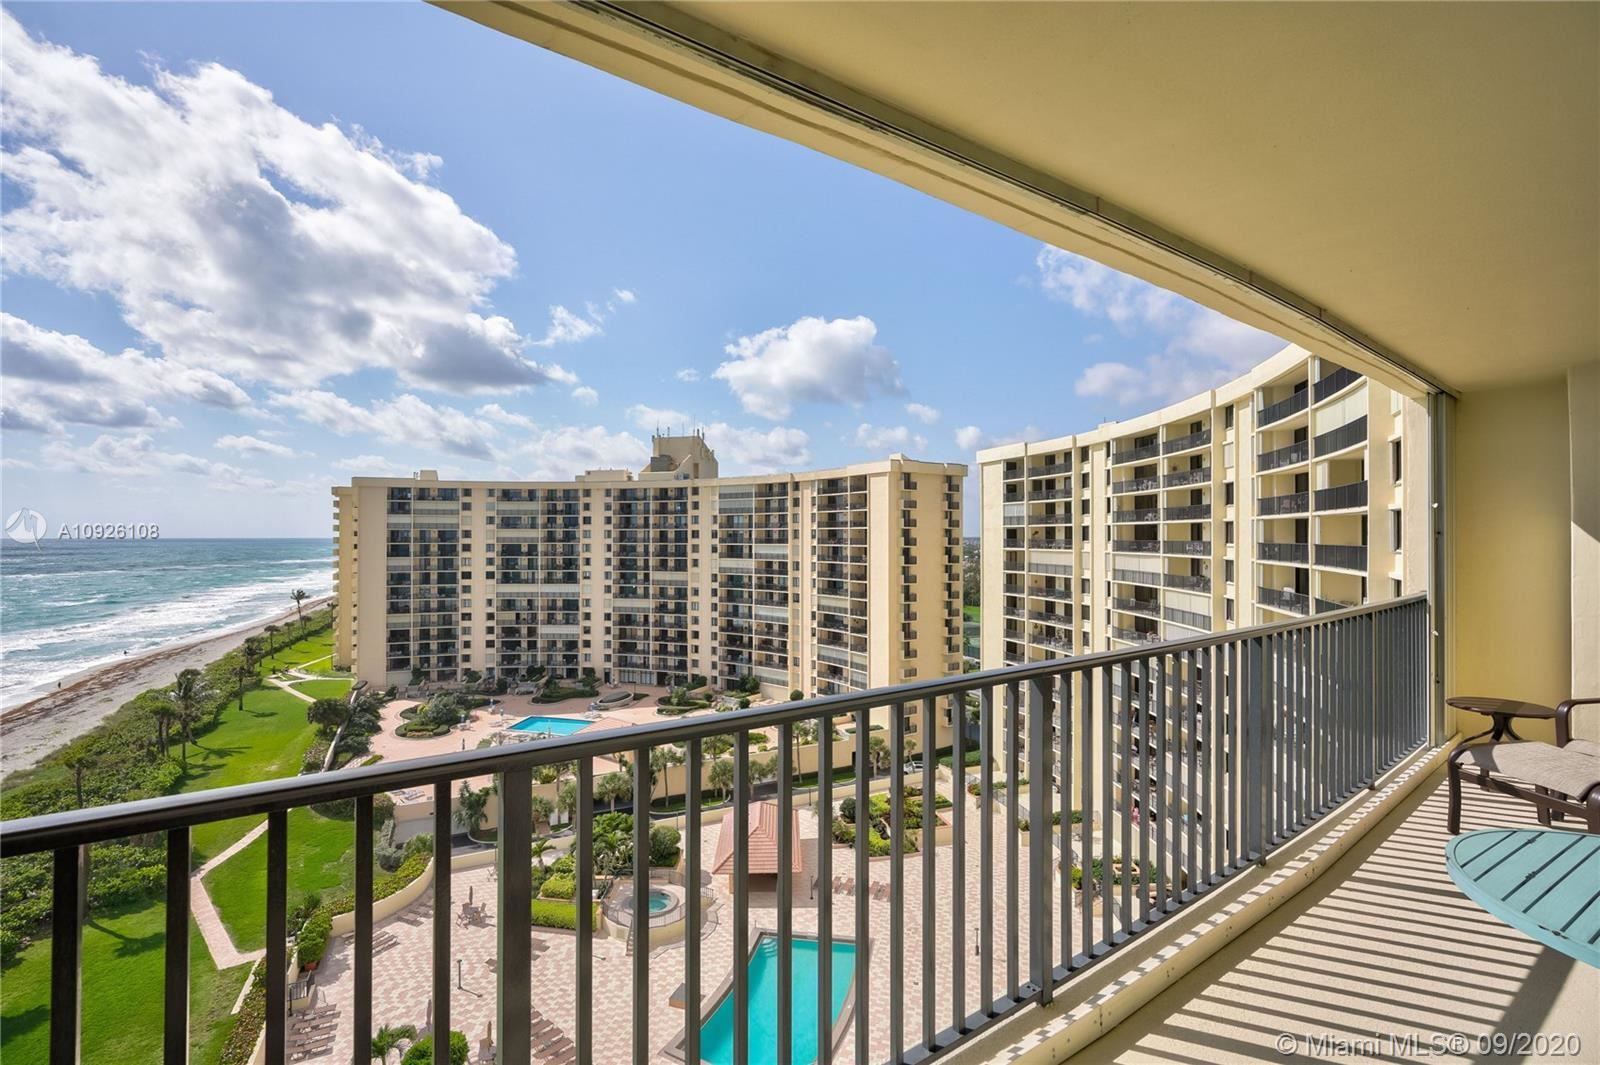 Photo of 400 Ocean Trail Way #1102, Jupiter, FL 33477 (MLS # A10926108)